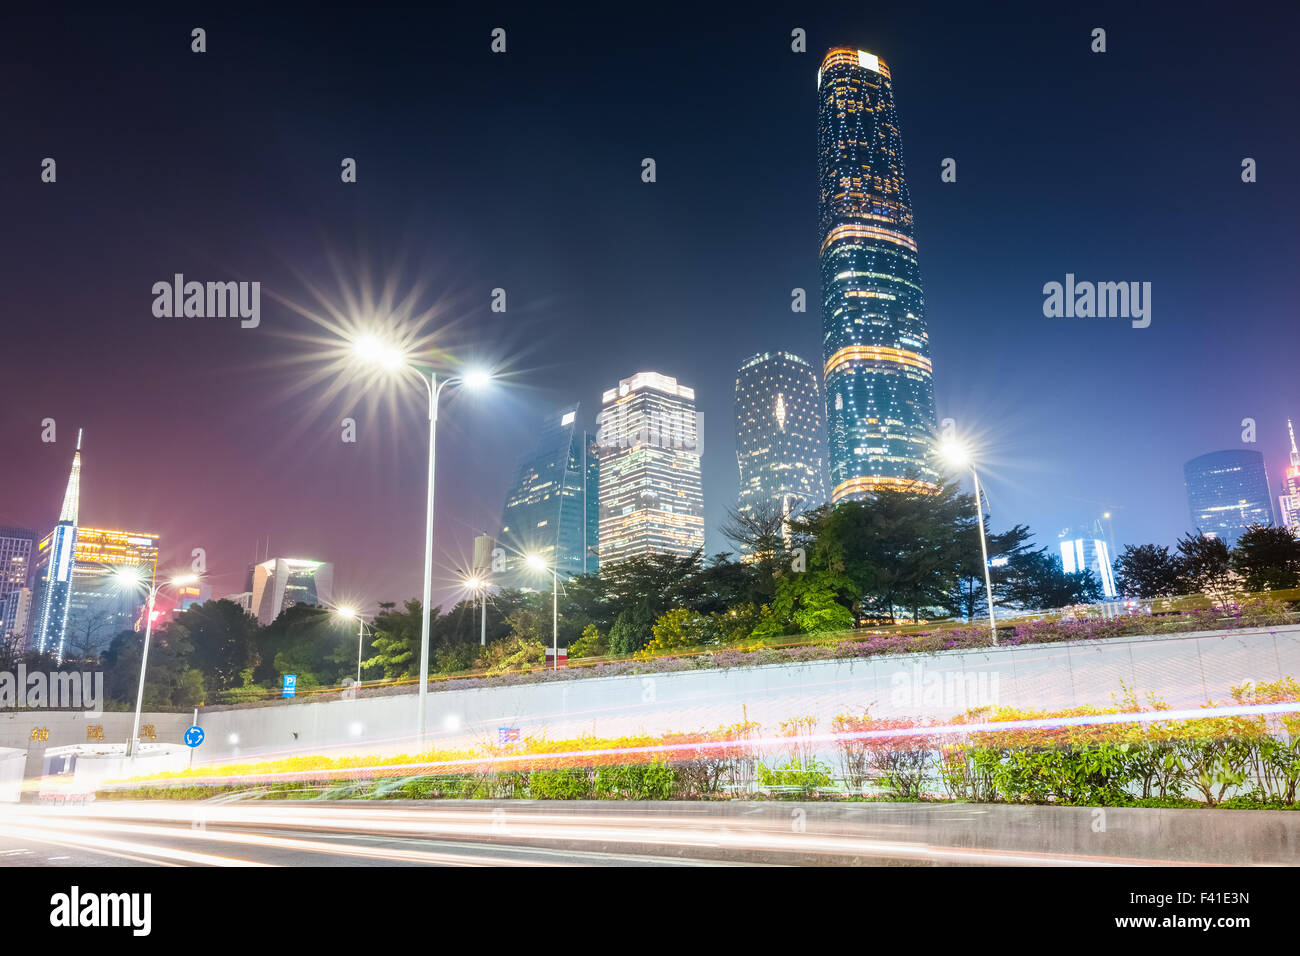 pearl river new town at night - Stock Image